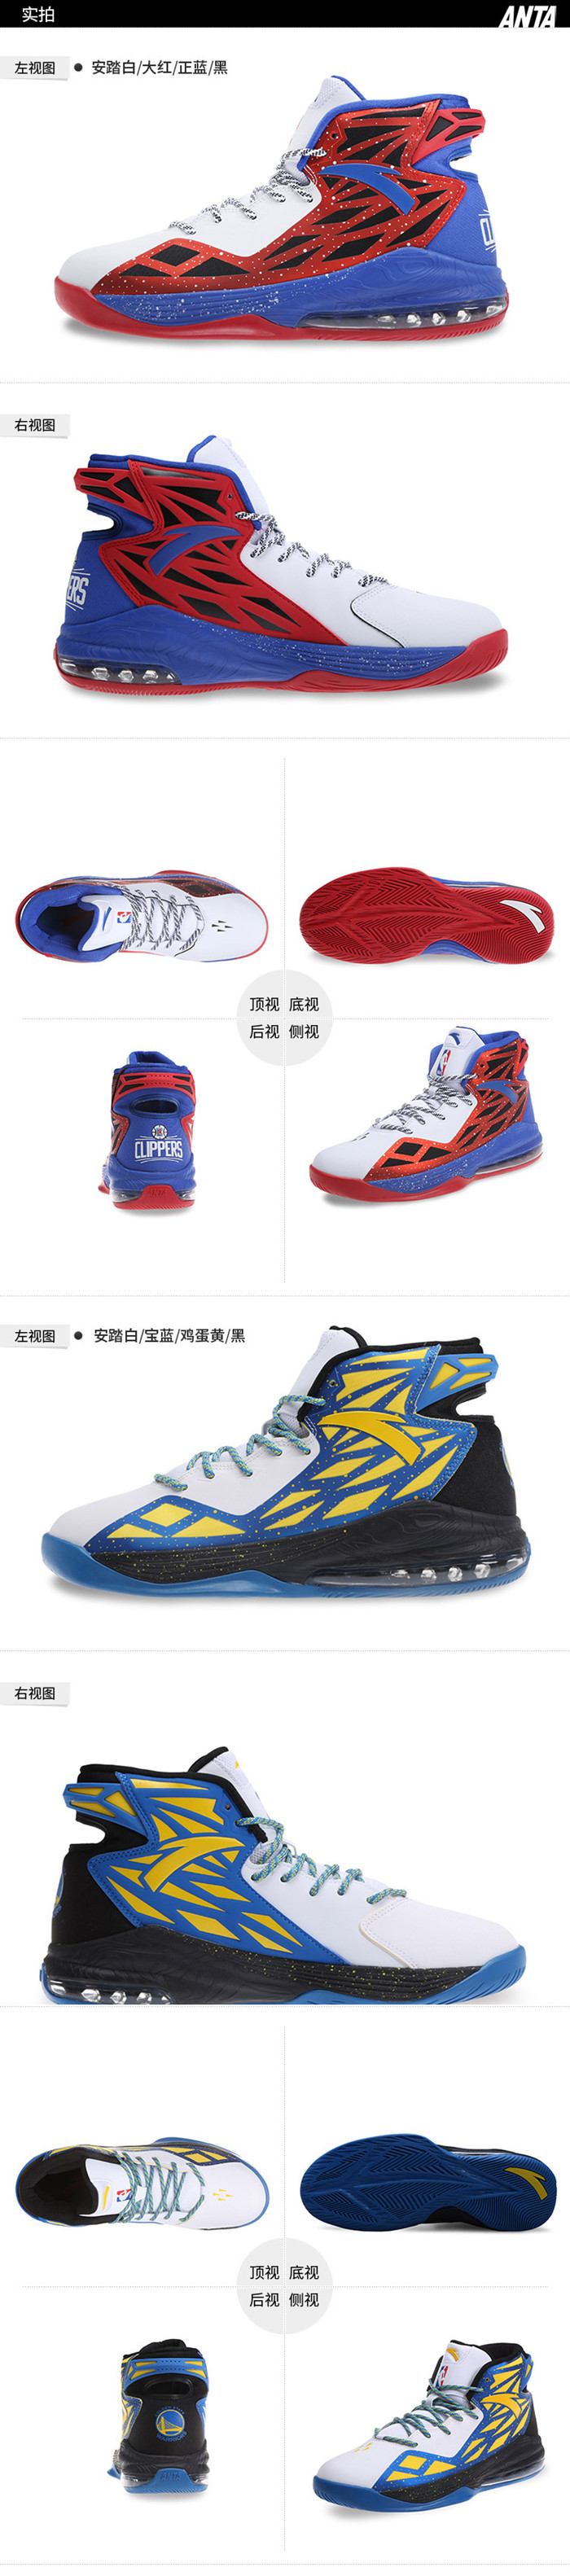 Los Angeles Clippers Anta NBA Professional Basketball Shoes